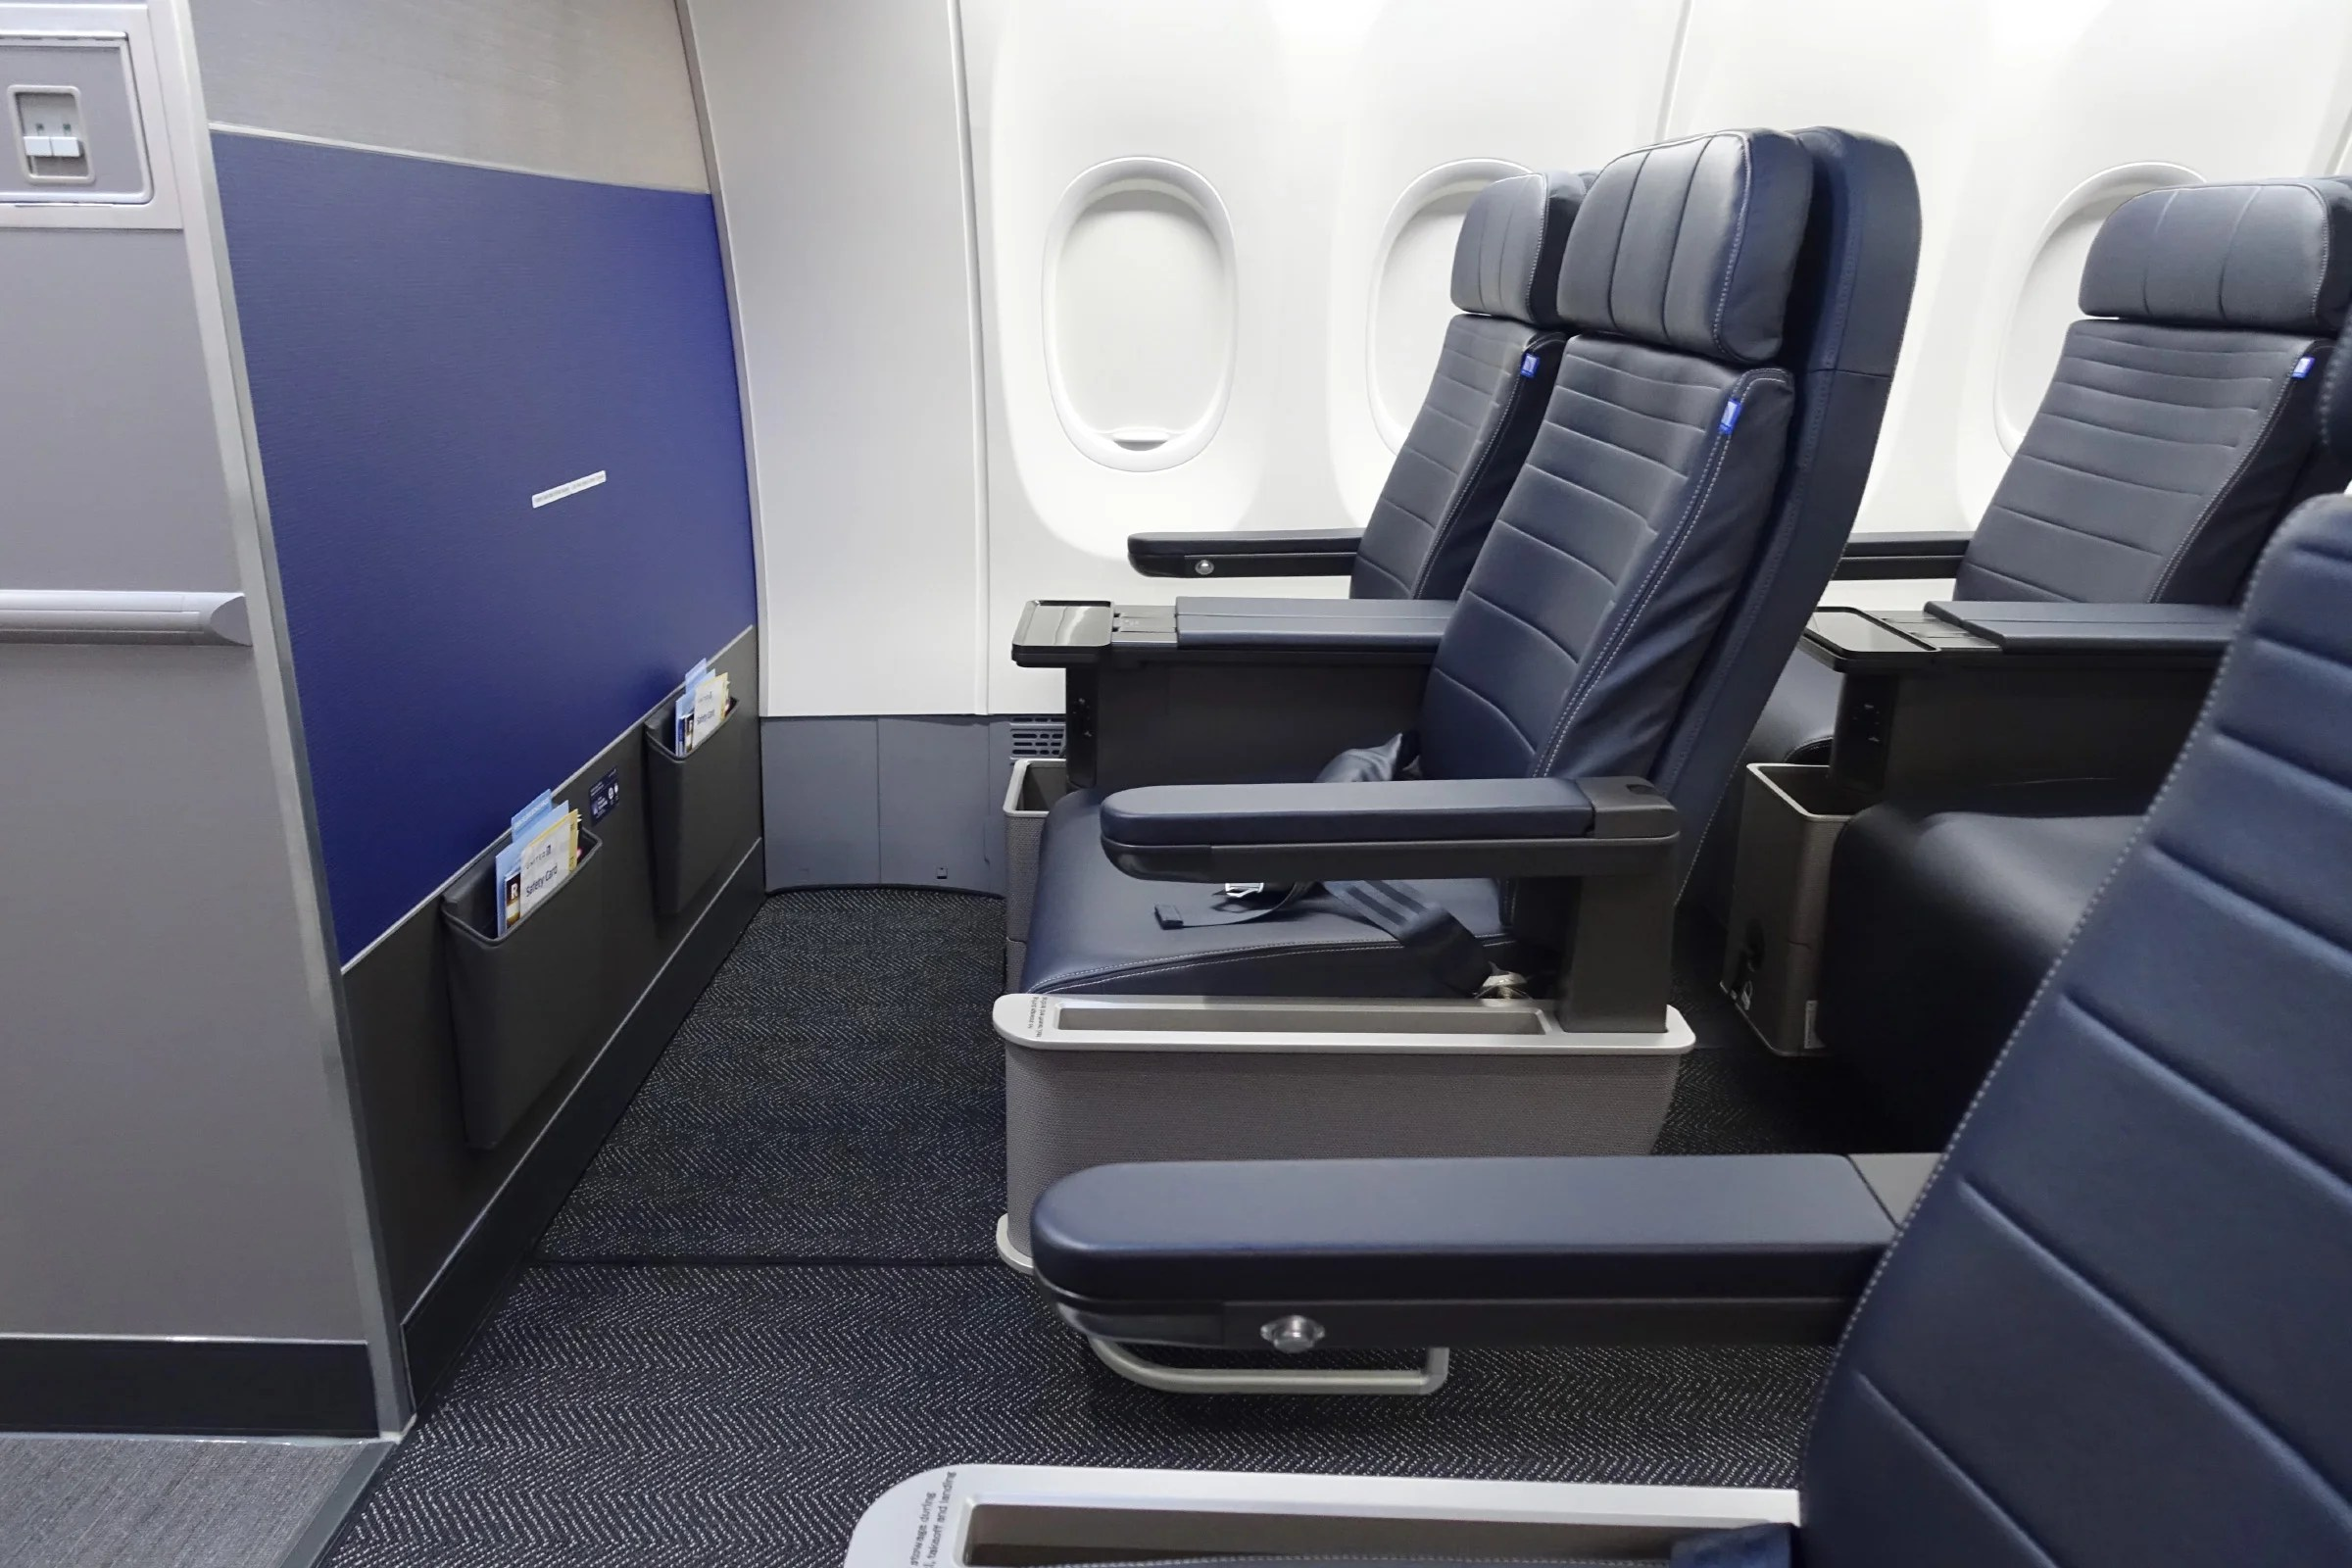 ICYMI: American Airlines Executive Tweets About United First Class Experience